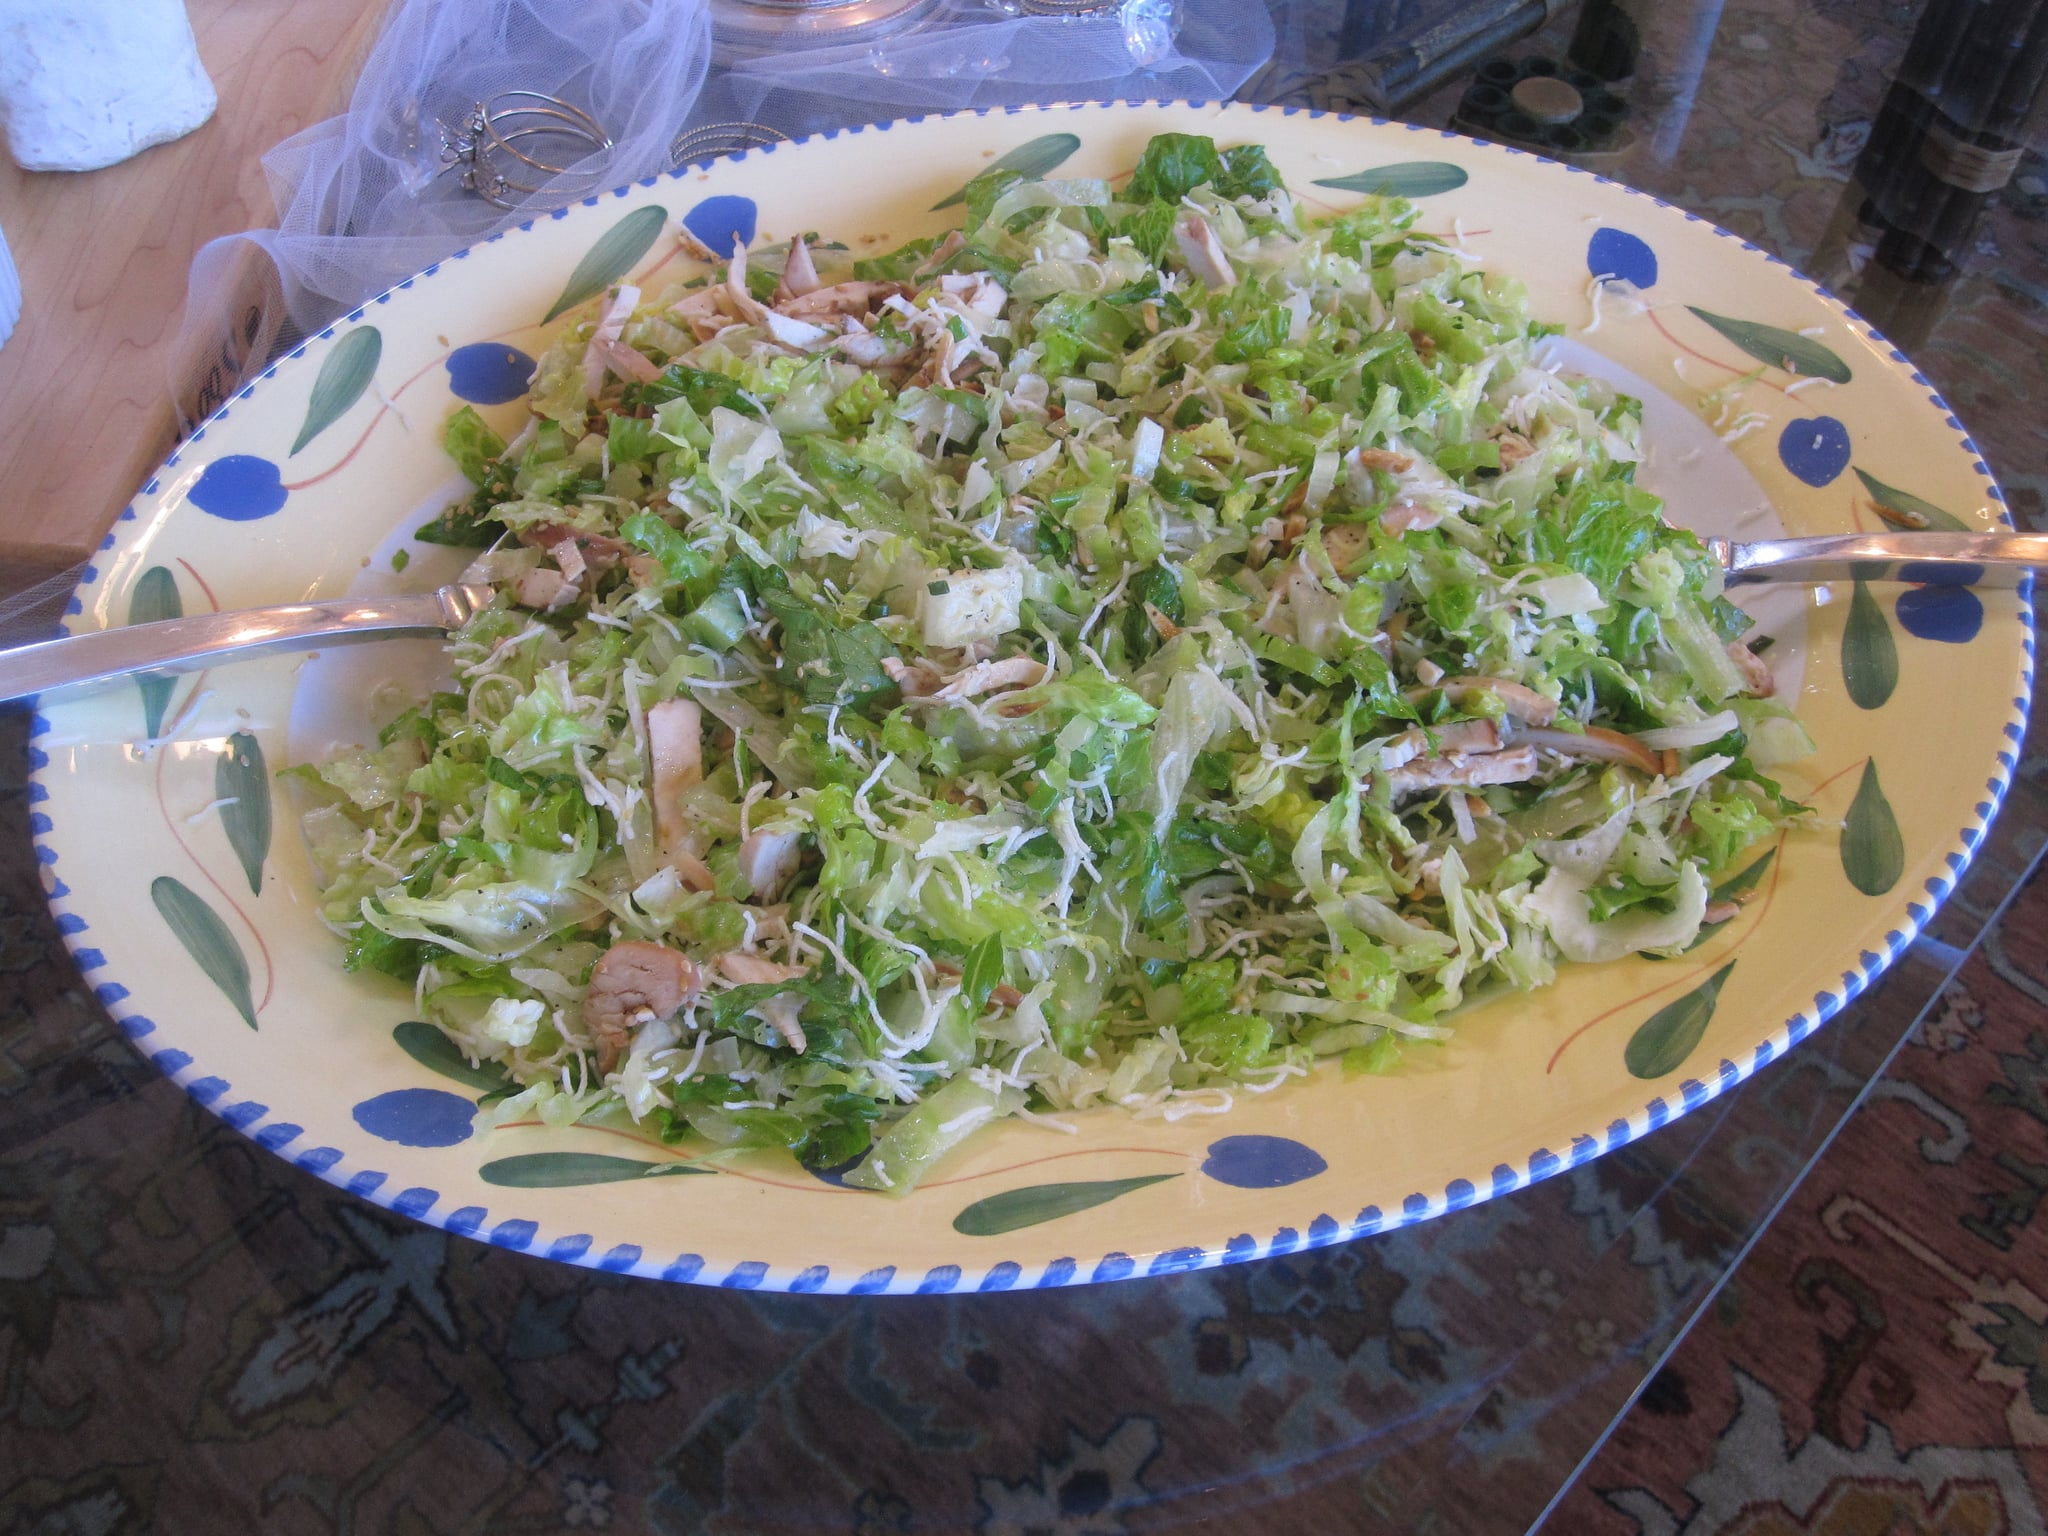 One of the bride's favorite salads is Comforts Cafe Chinese chicken salad. It was served family style on a large platter.